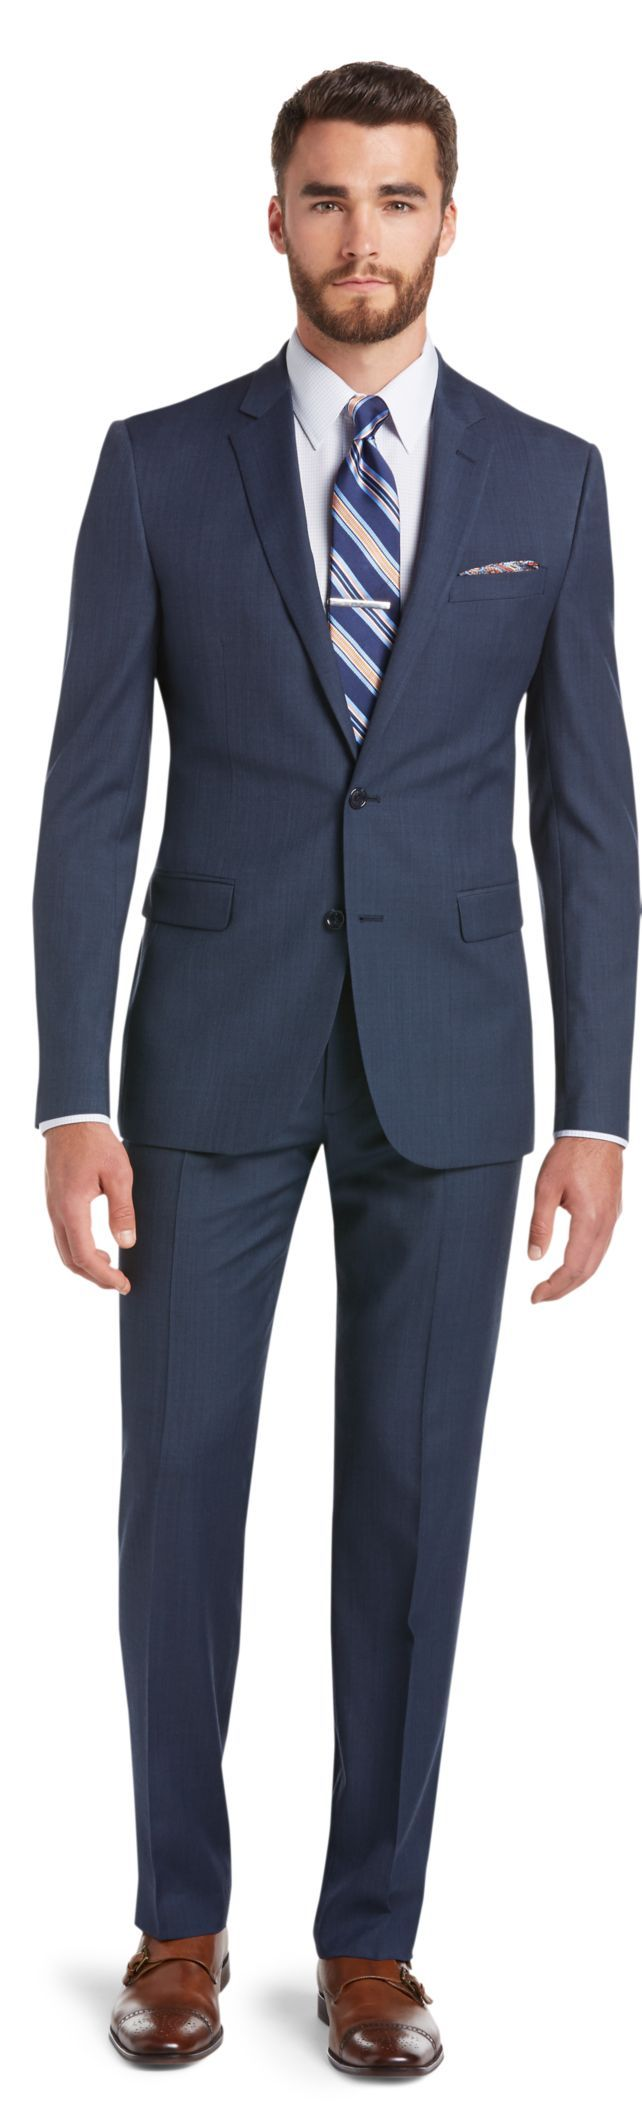 Classic Collection Slim Fit Sharkskin Suit Big and Tall